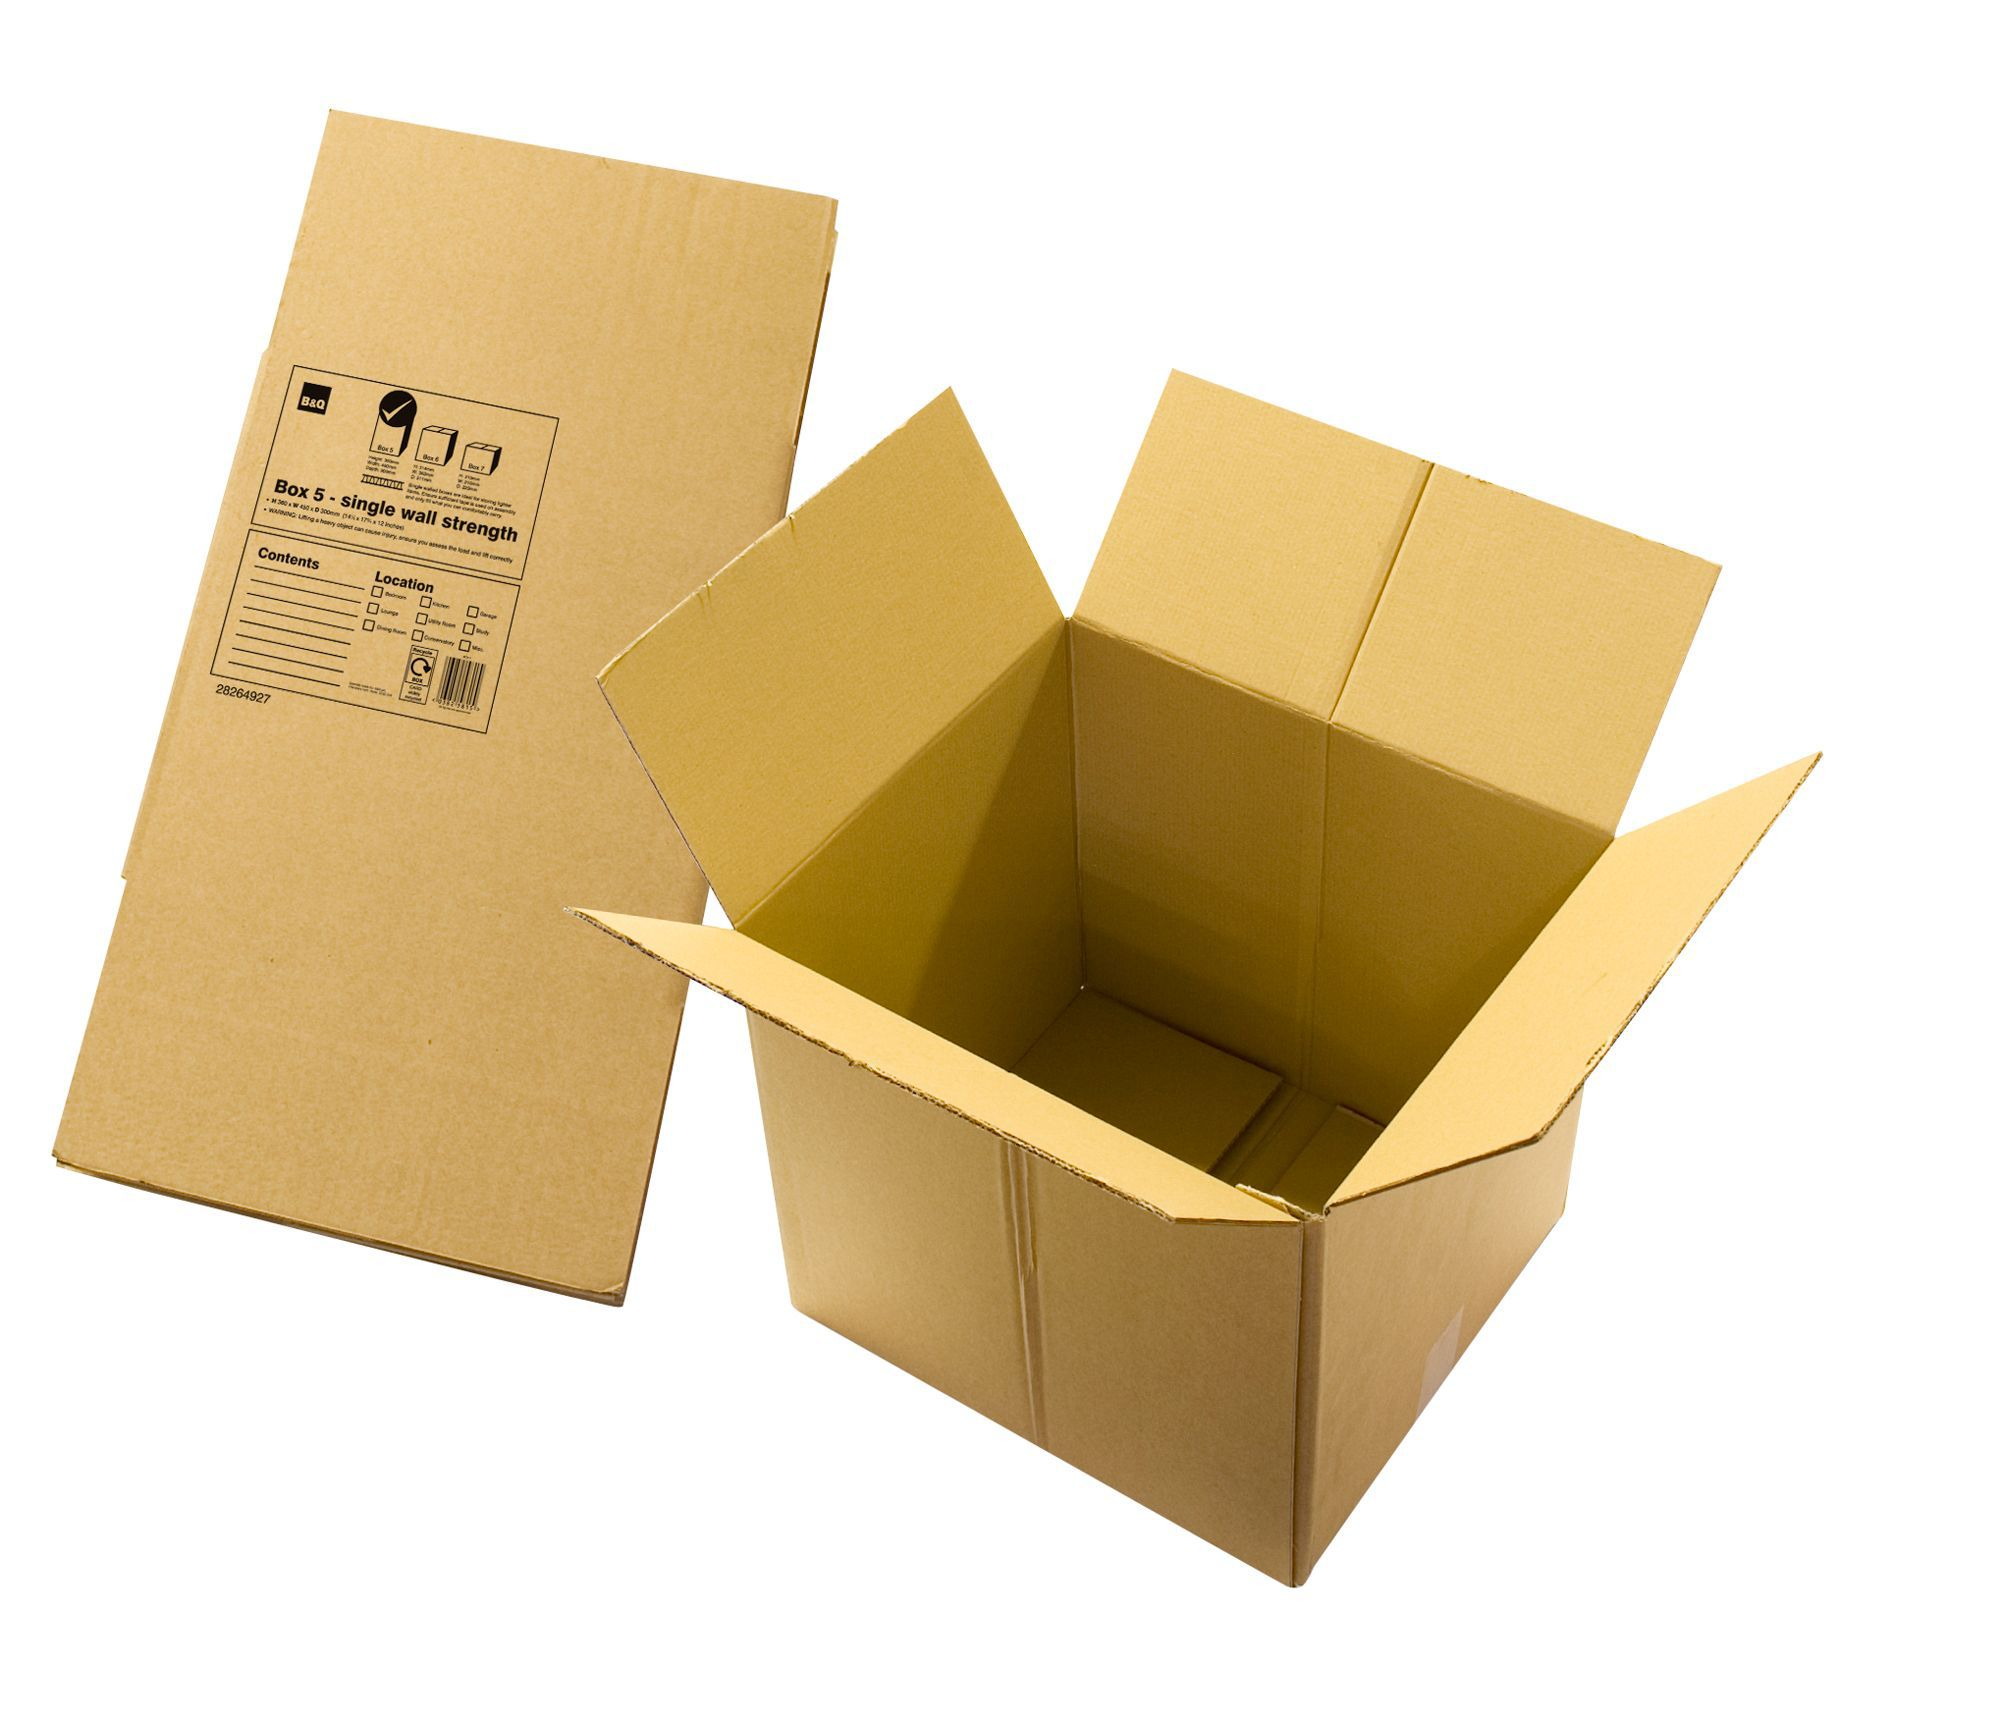 Bq Brown Cardboard Storage Box Departments Diy At Bq Make Your Own Beautiful  HD Wallpapers, Images Over 1000+ [ralydesign.ml]